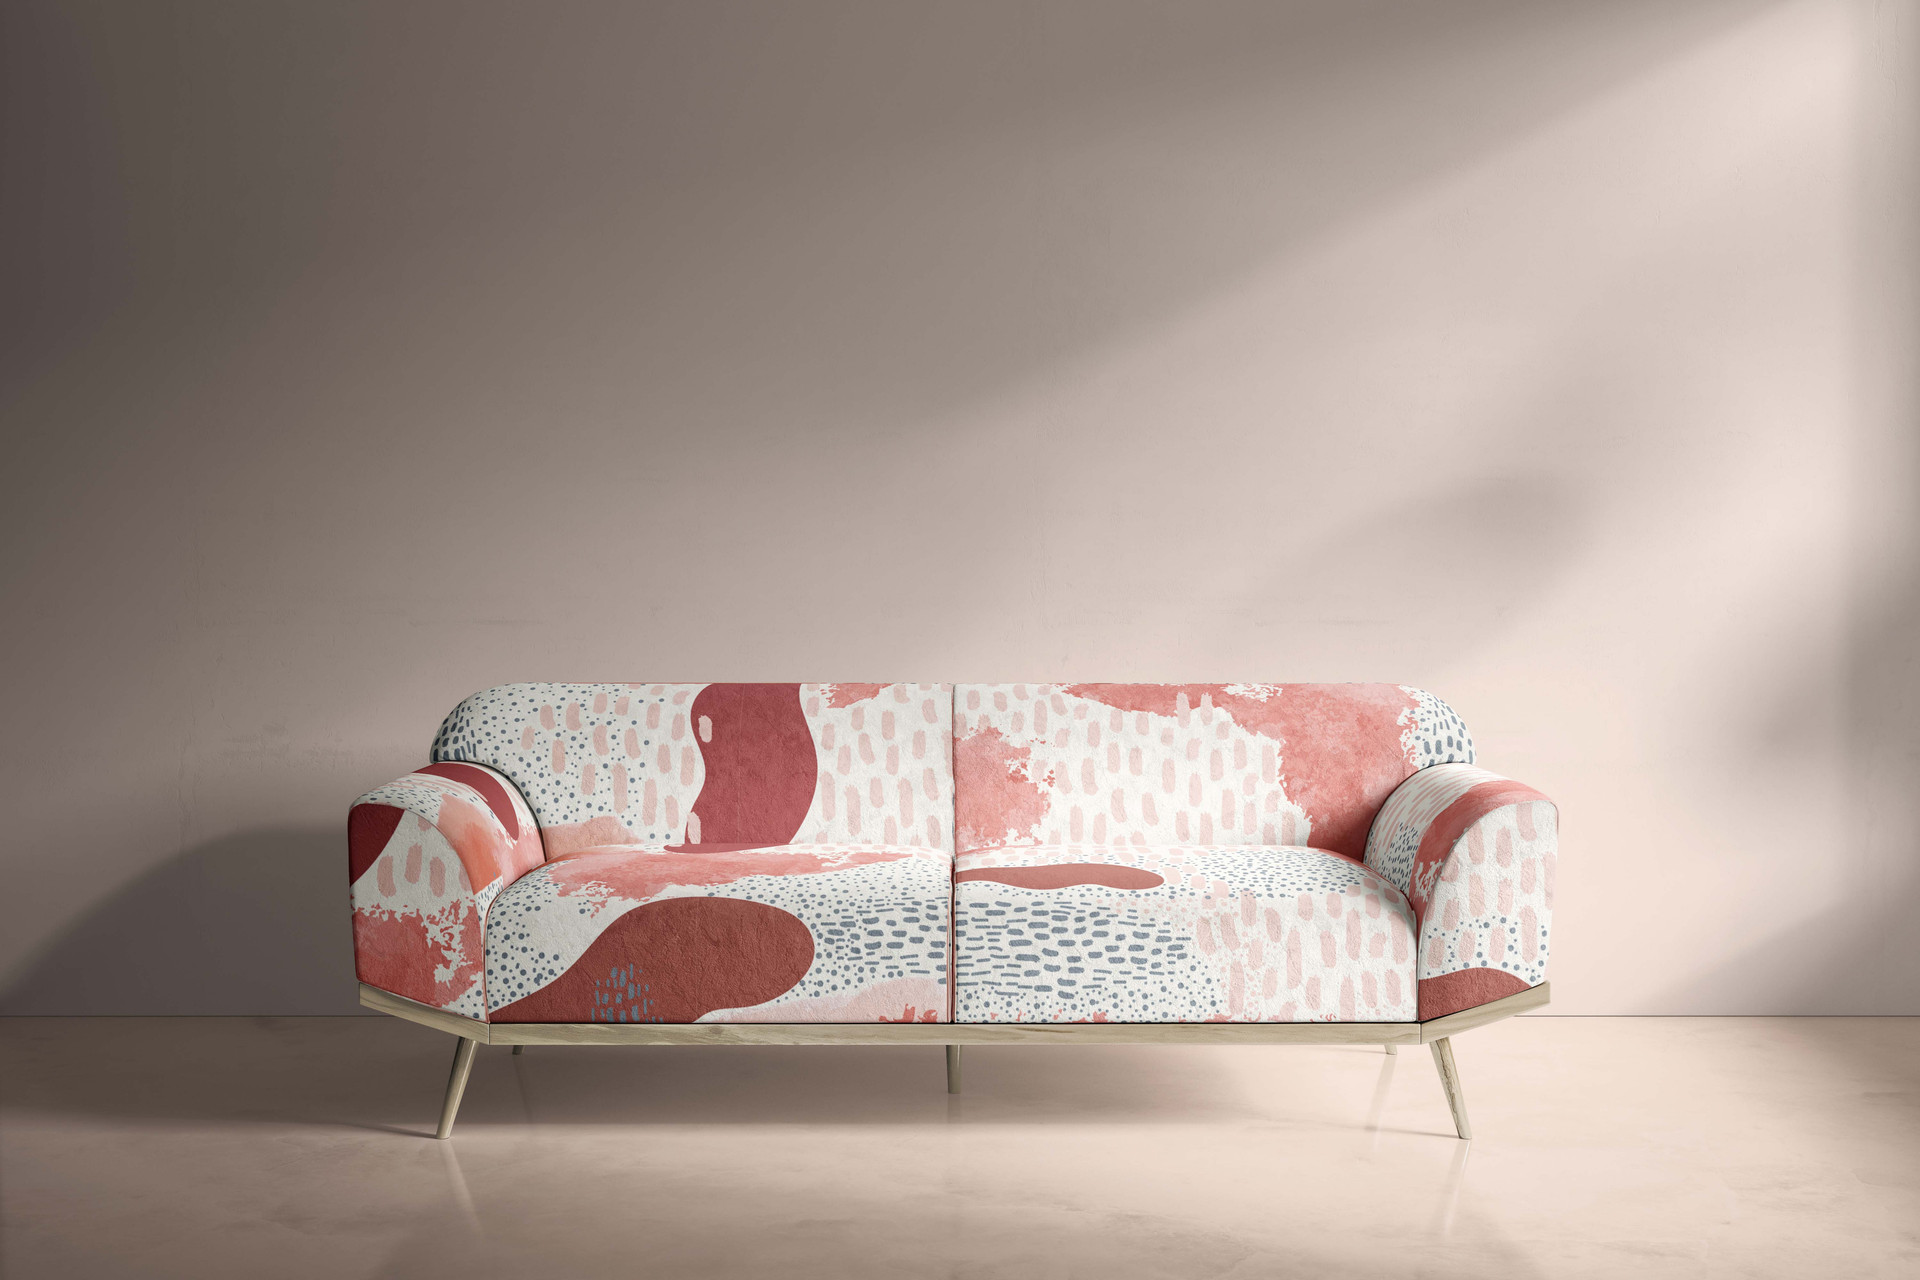 The Marks Upholstery